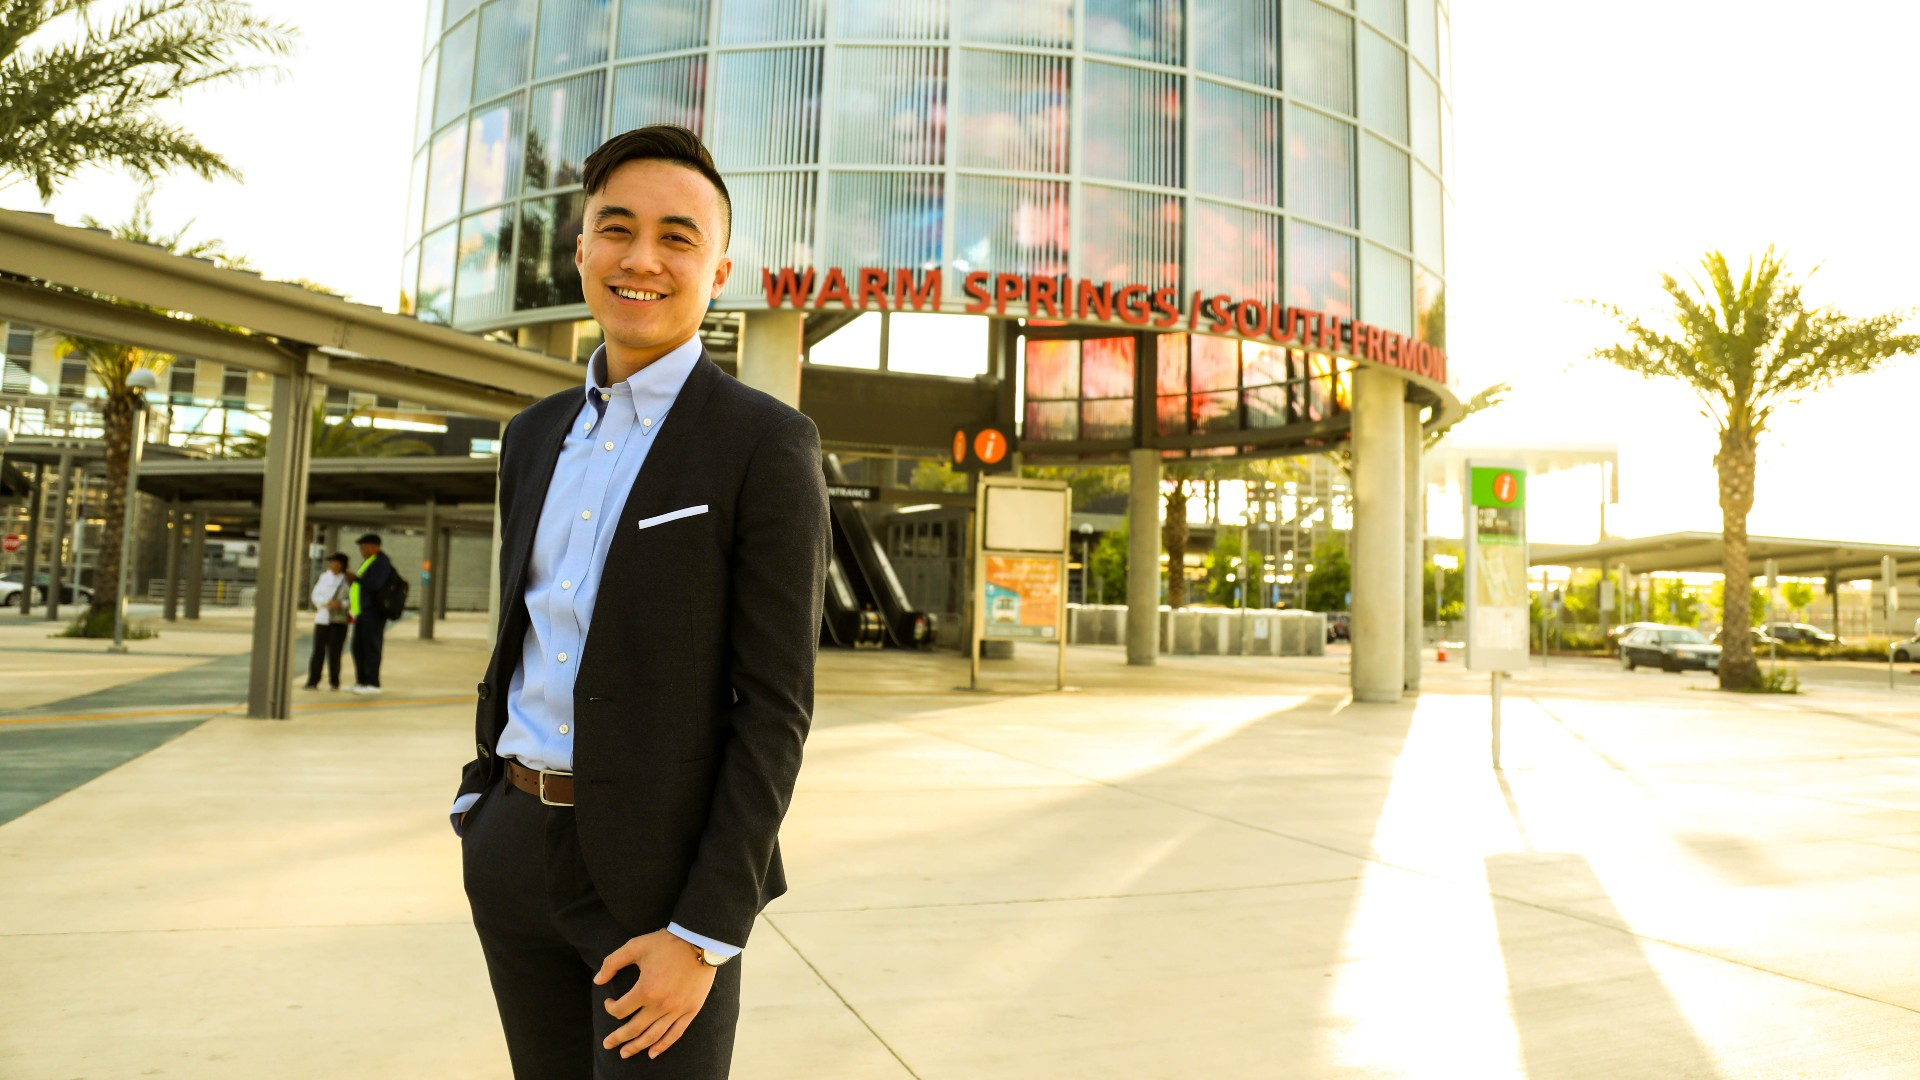 Alex Lee, a Democrat from San Jose, became the youngest state lawmaker to be elected in 80 years after he defeated Republican Bob Brunto. The 25-year-old is also the first California legislator to have come out as bisexual. (Alex Lee campaign photo)